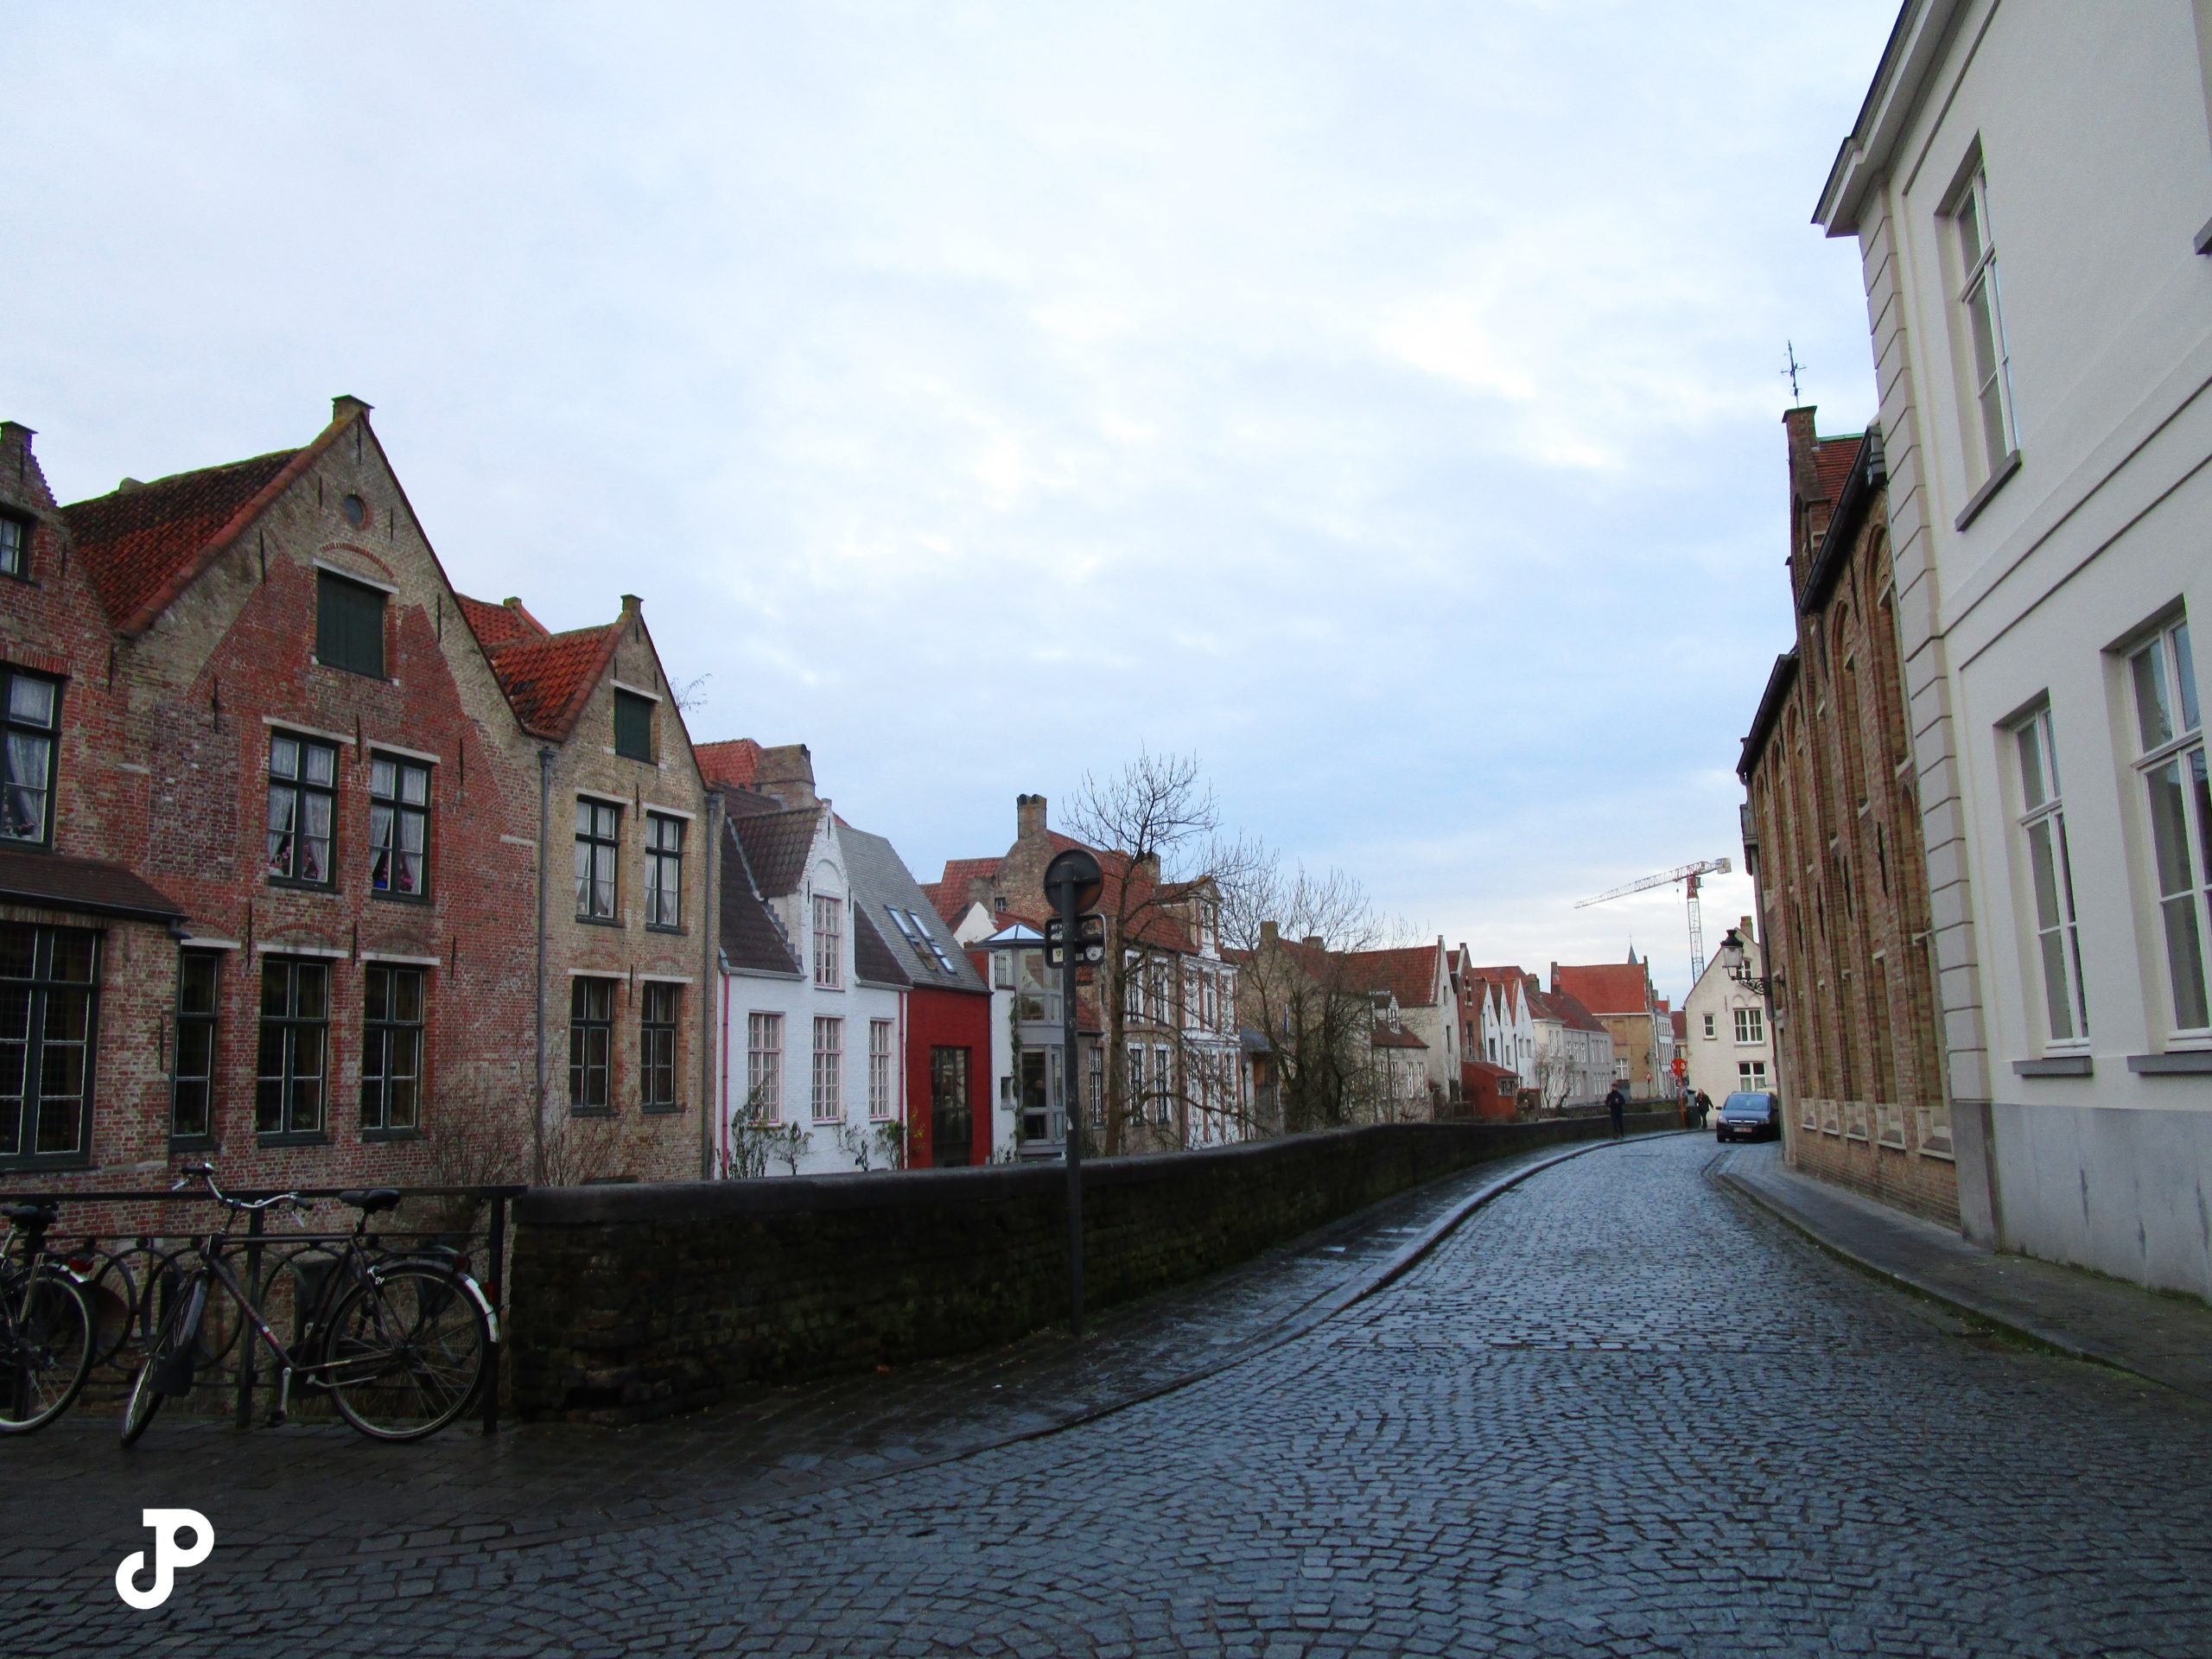 a cobblestoned street lined with old brick buildings with pointed rooves